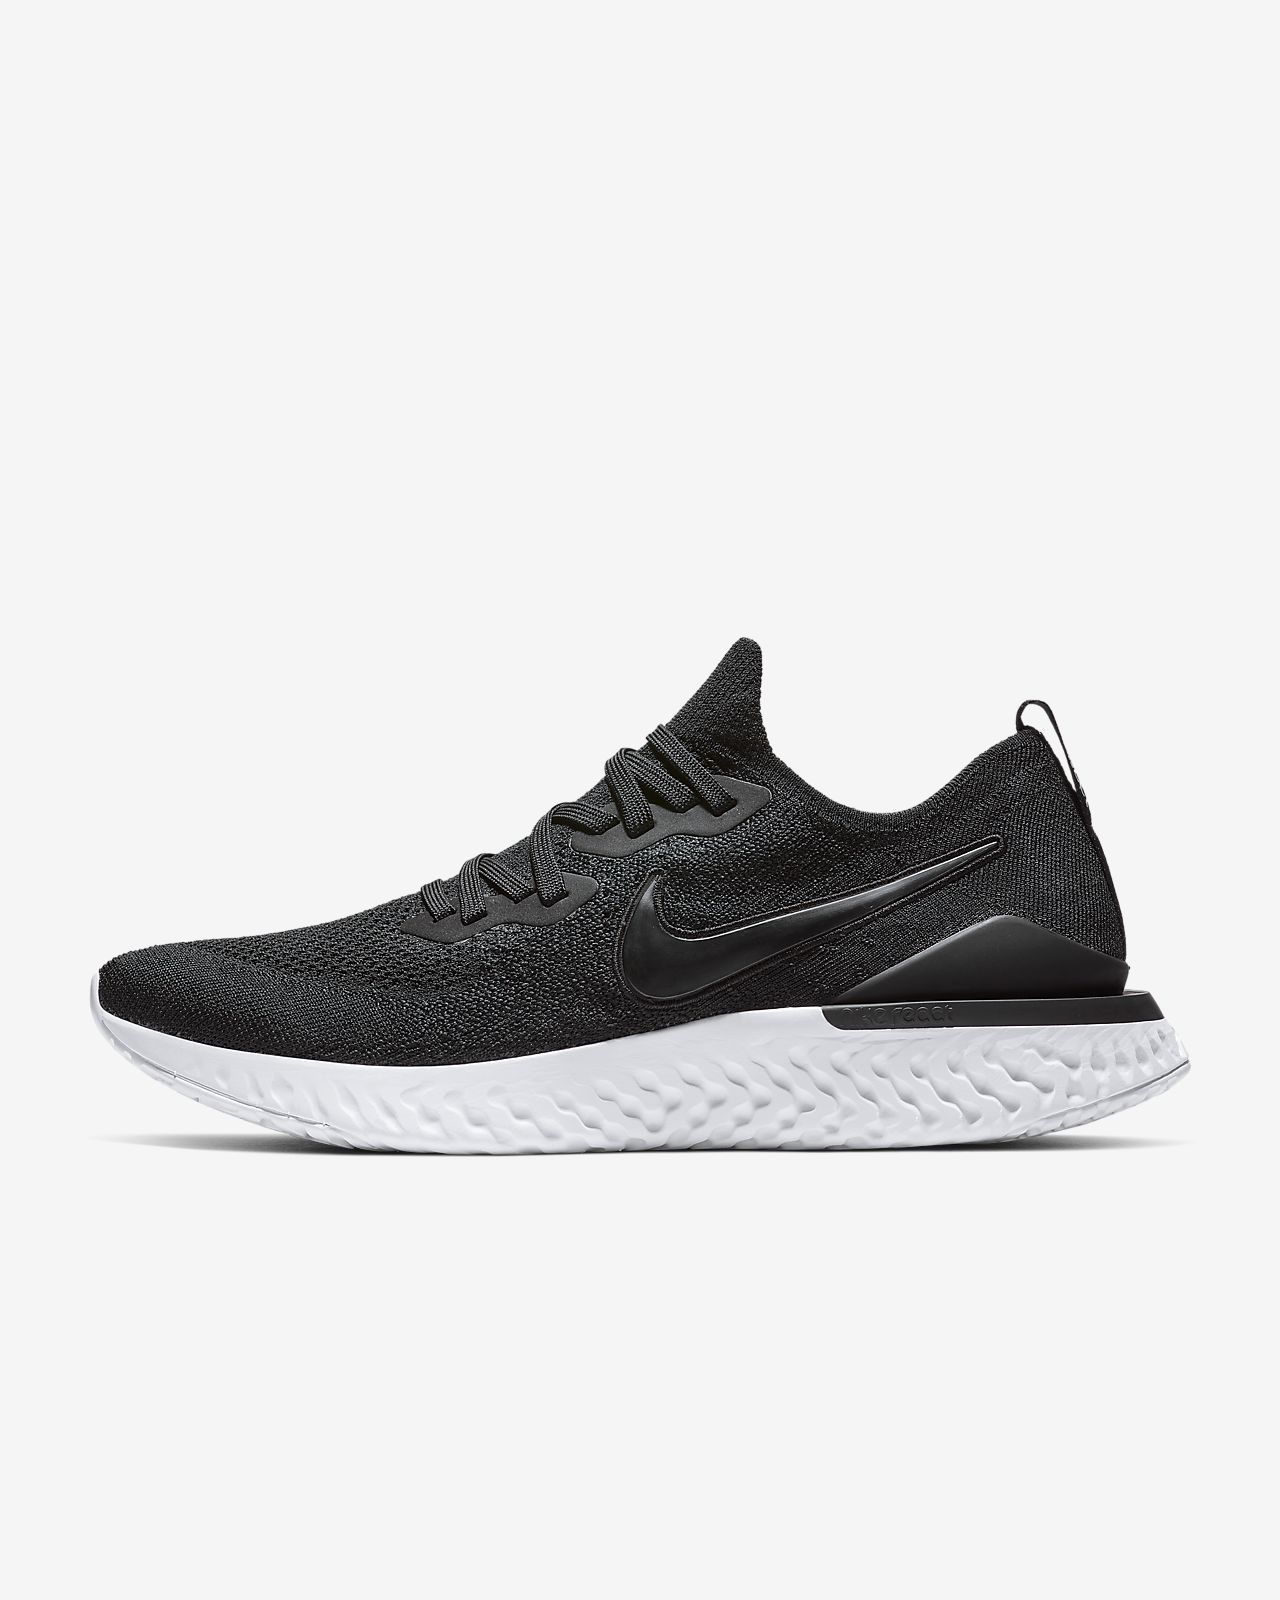 c06f0fc88ab79 Nike Epic React Flyknit 2 Men s Running Shoe. Nike.com AU